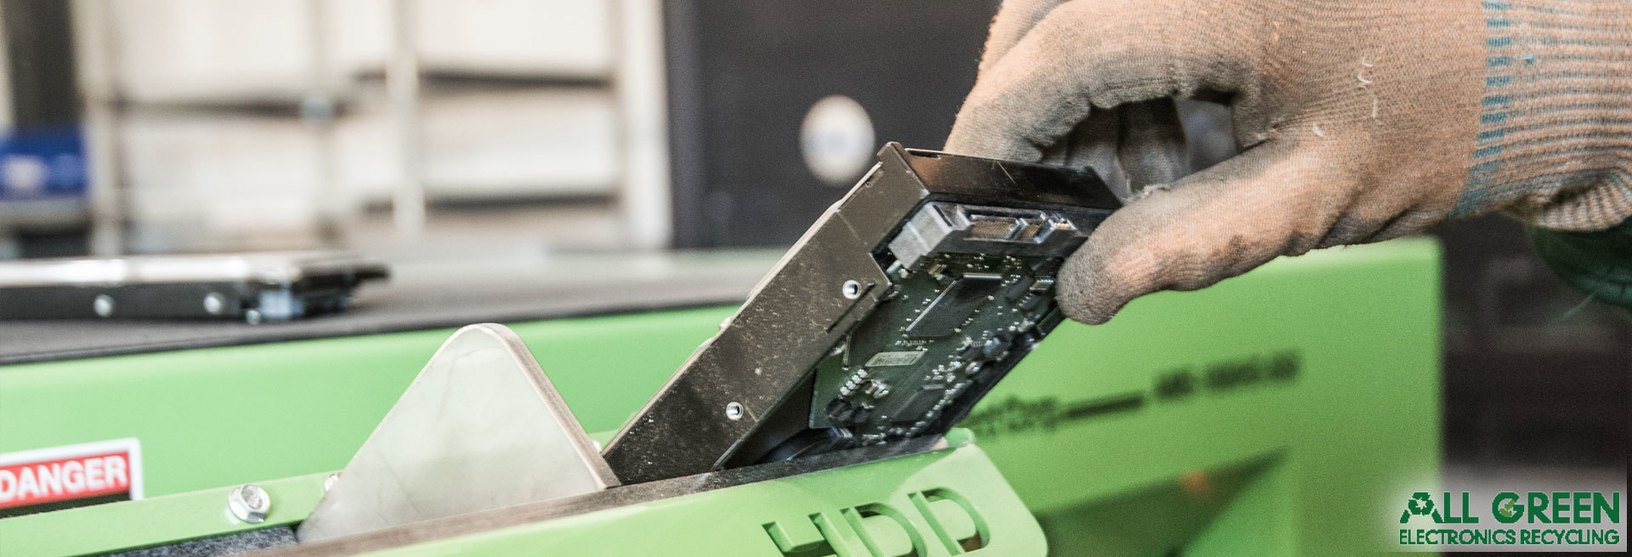 , E Waste Management – 3 Disposal Methods for Trusted IT Recycling, The Circular Economy, The Circular Economy